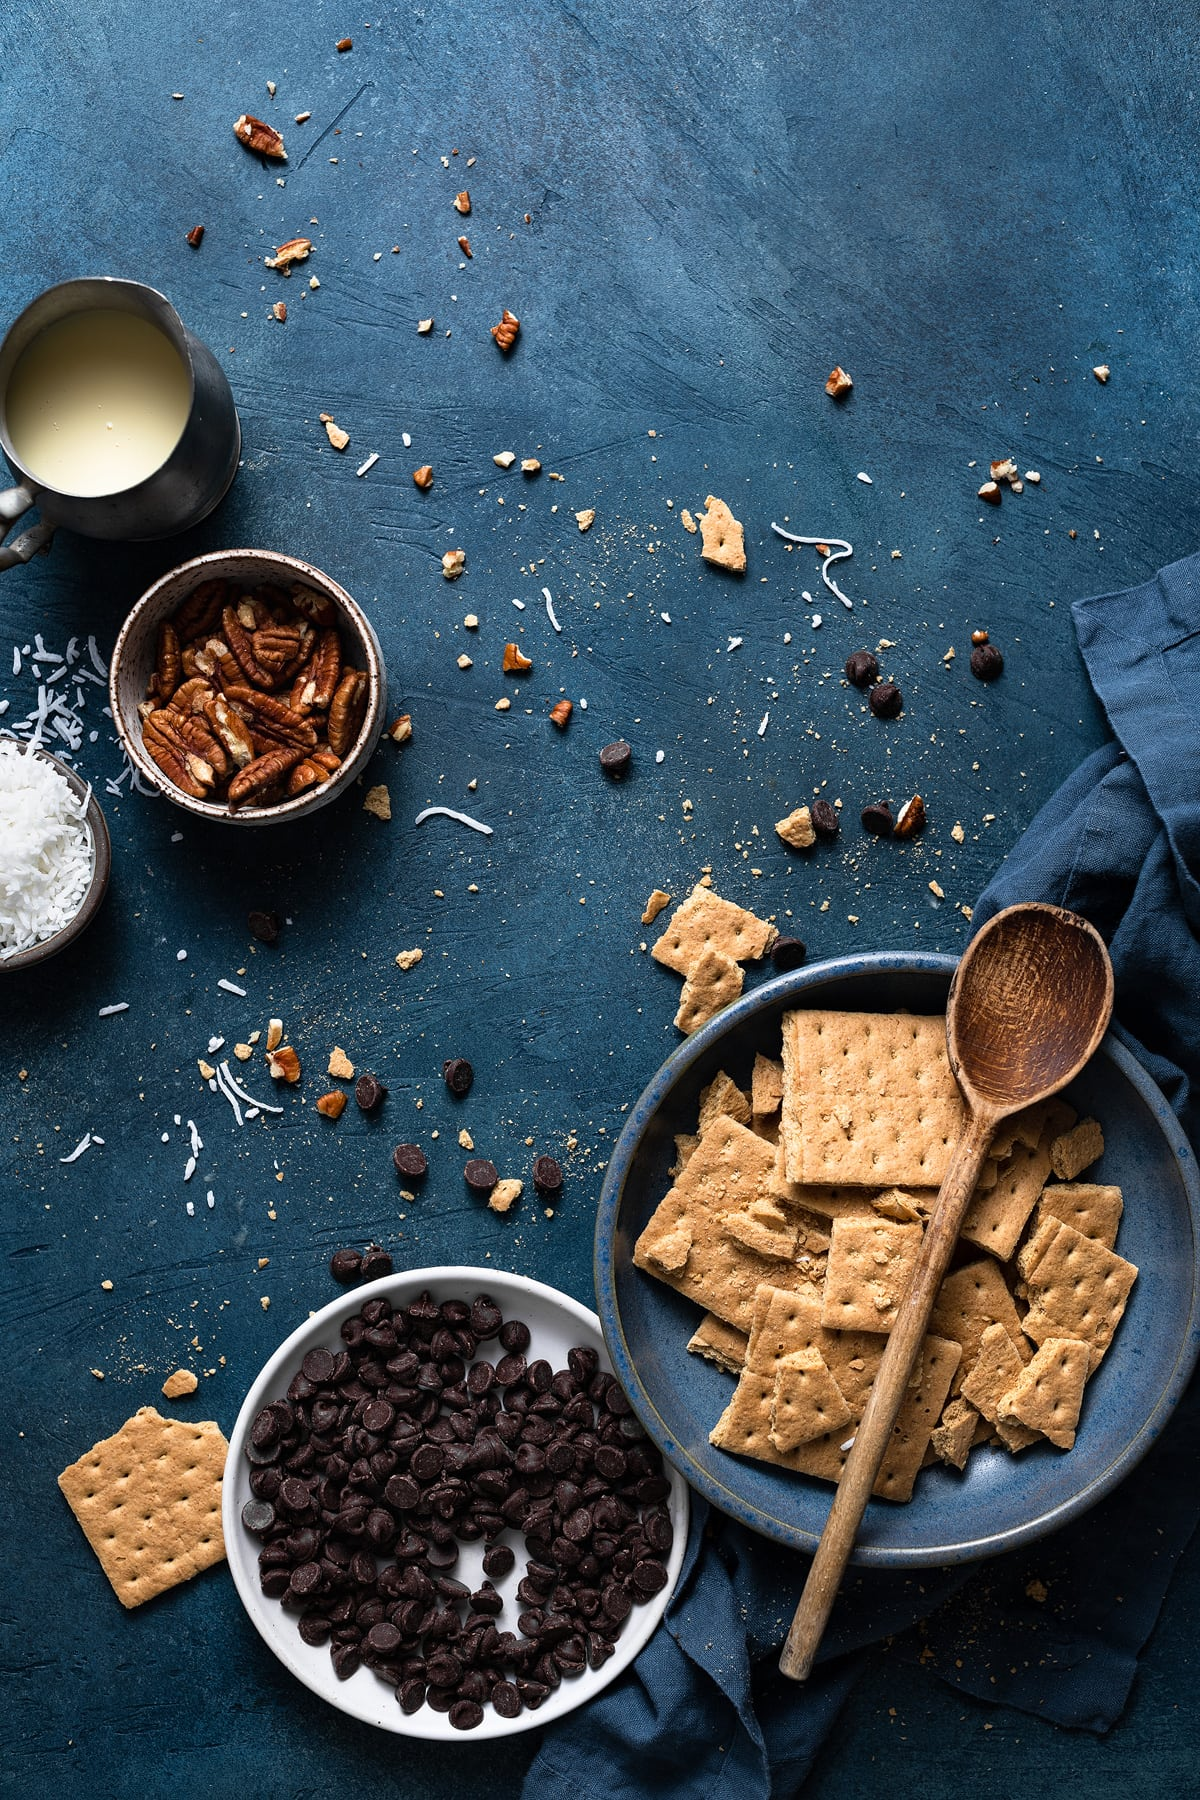 Ingredients needed to make magic cookie bars shown here.